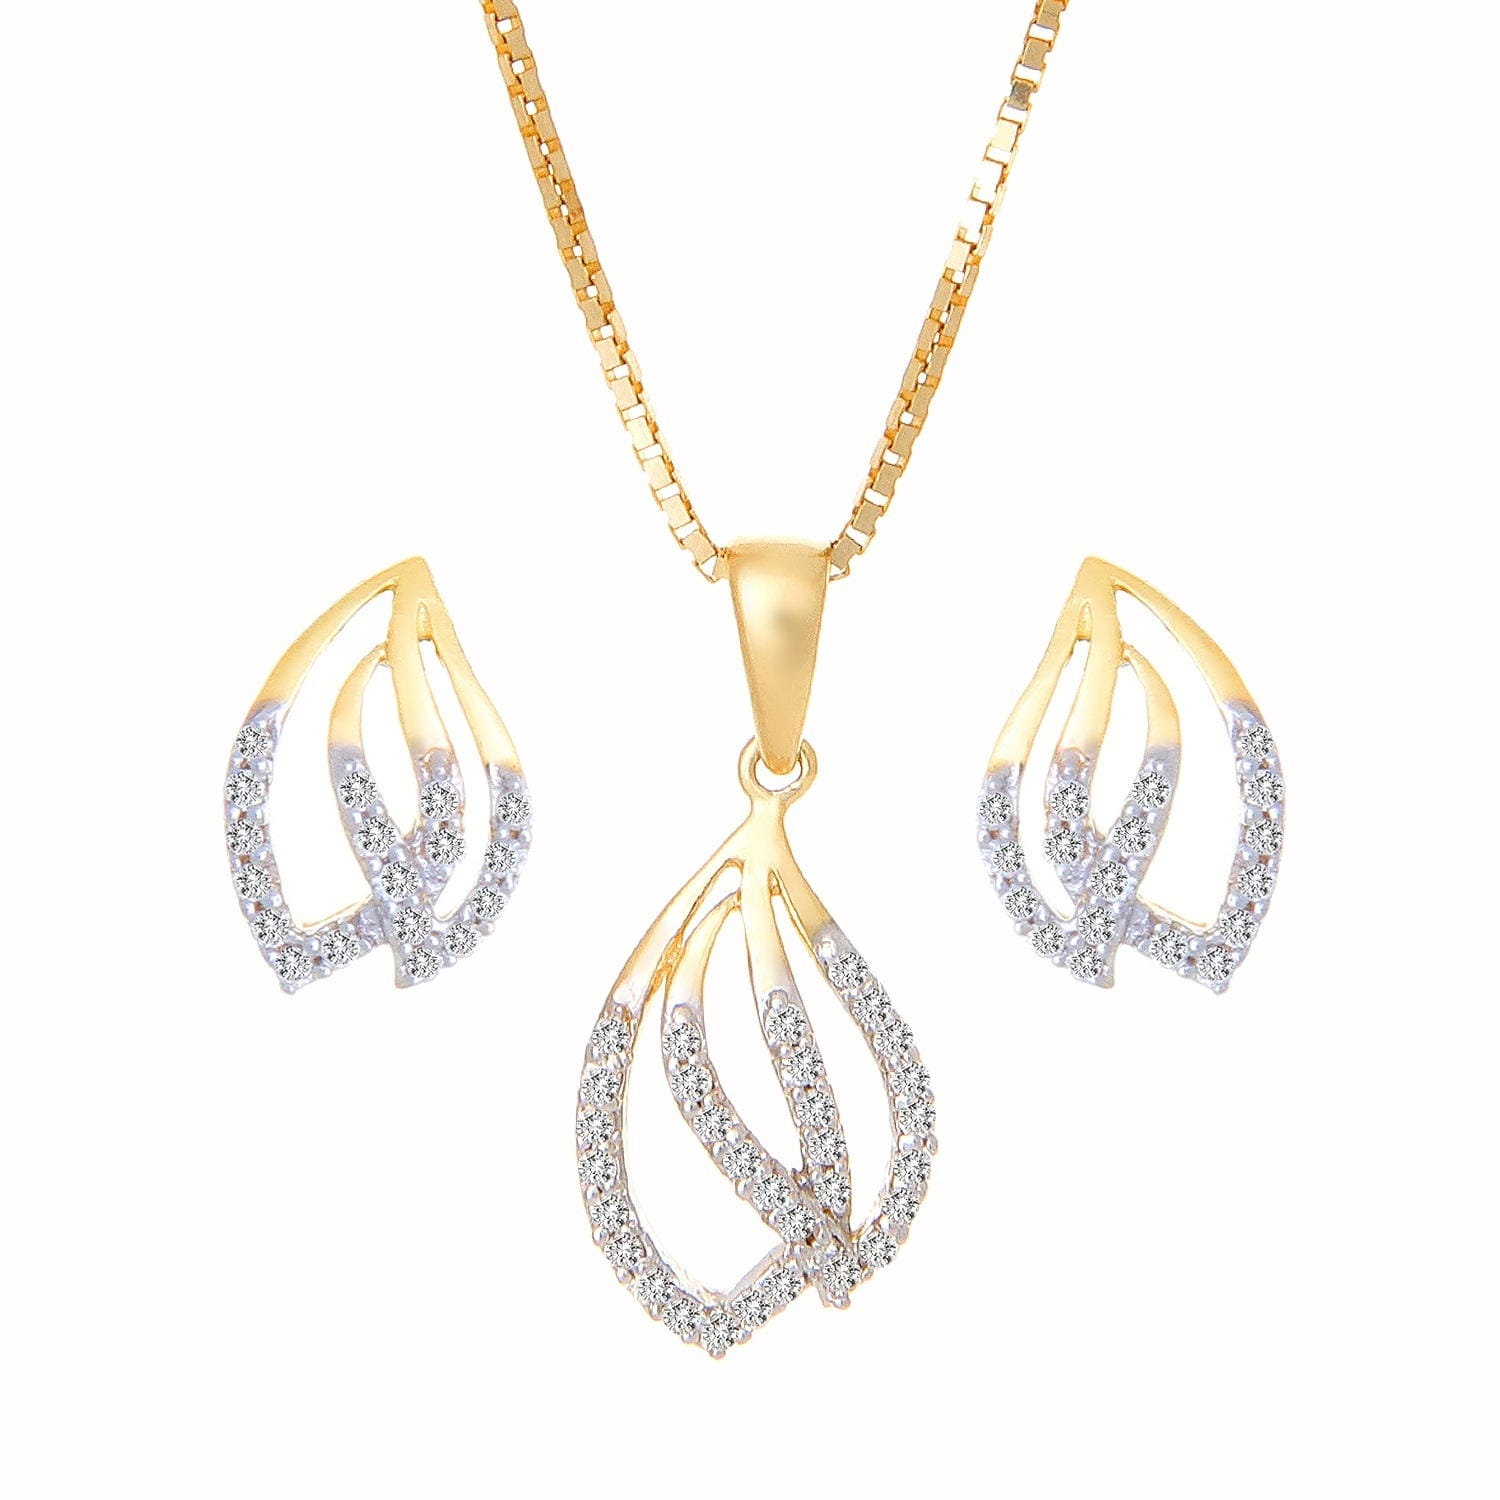 Buy leaf shaped gold and diamond tanishq pendant set at best price buy leaf shaped gold and diamond tanishq pendant set at best price online india titan mozeypictures Choice Image